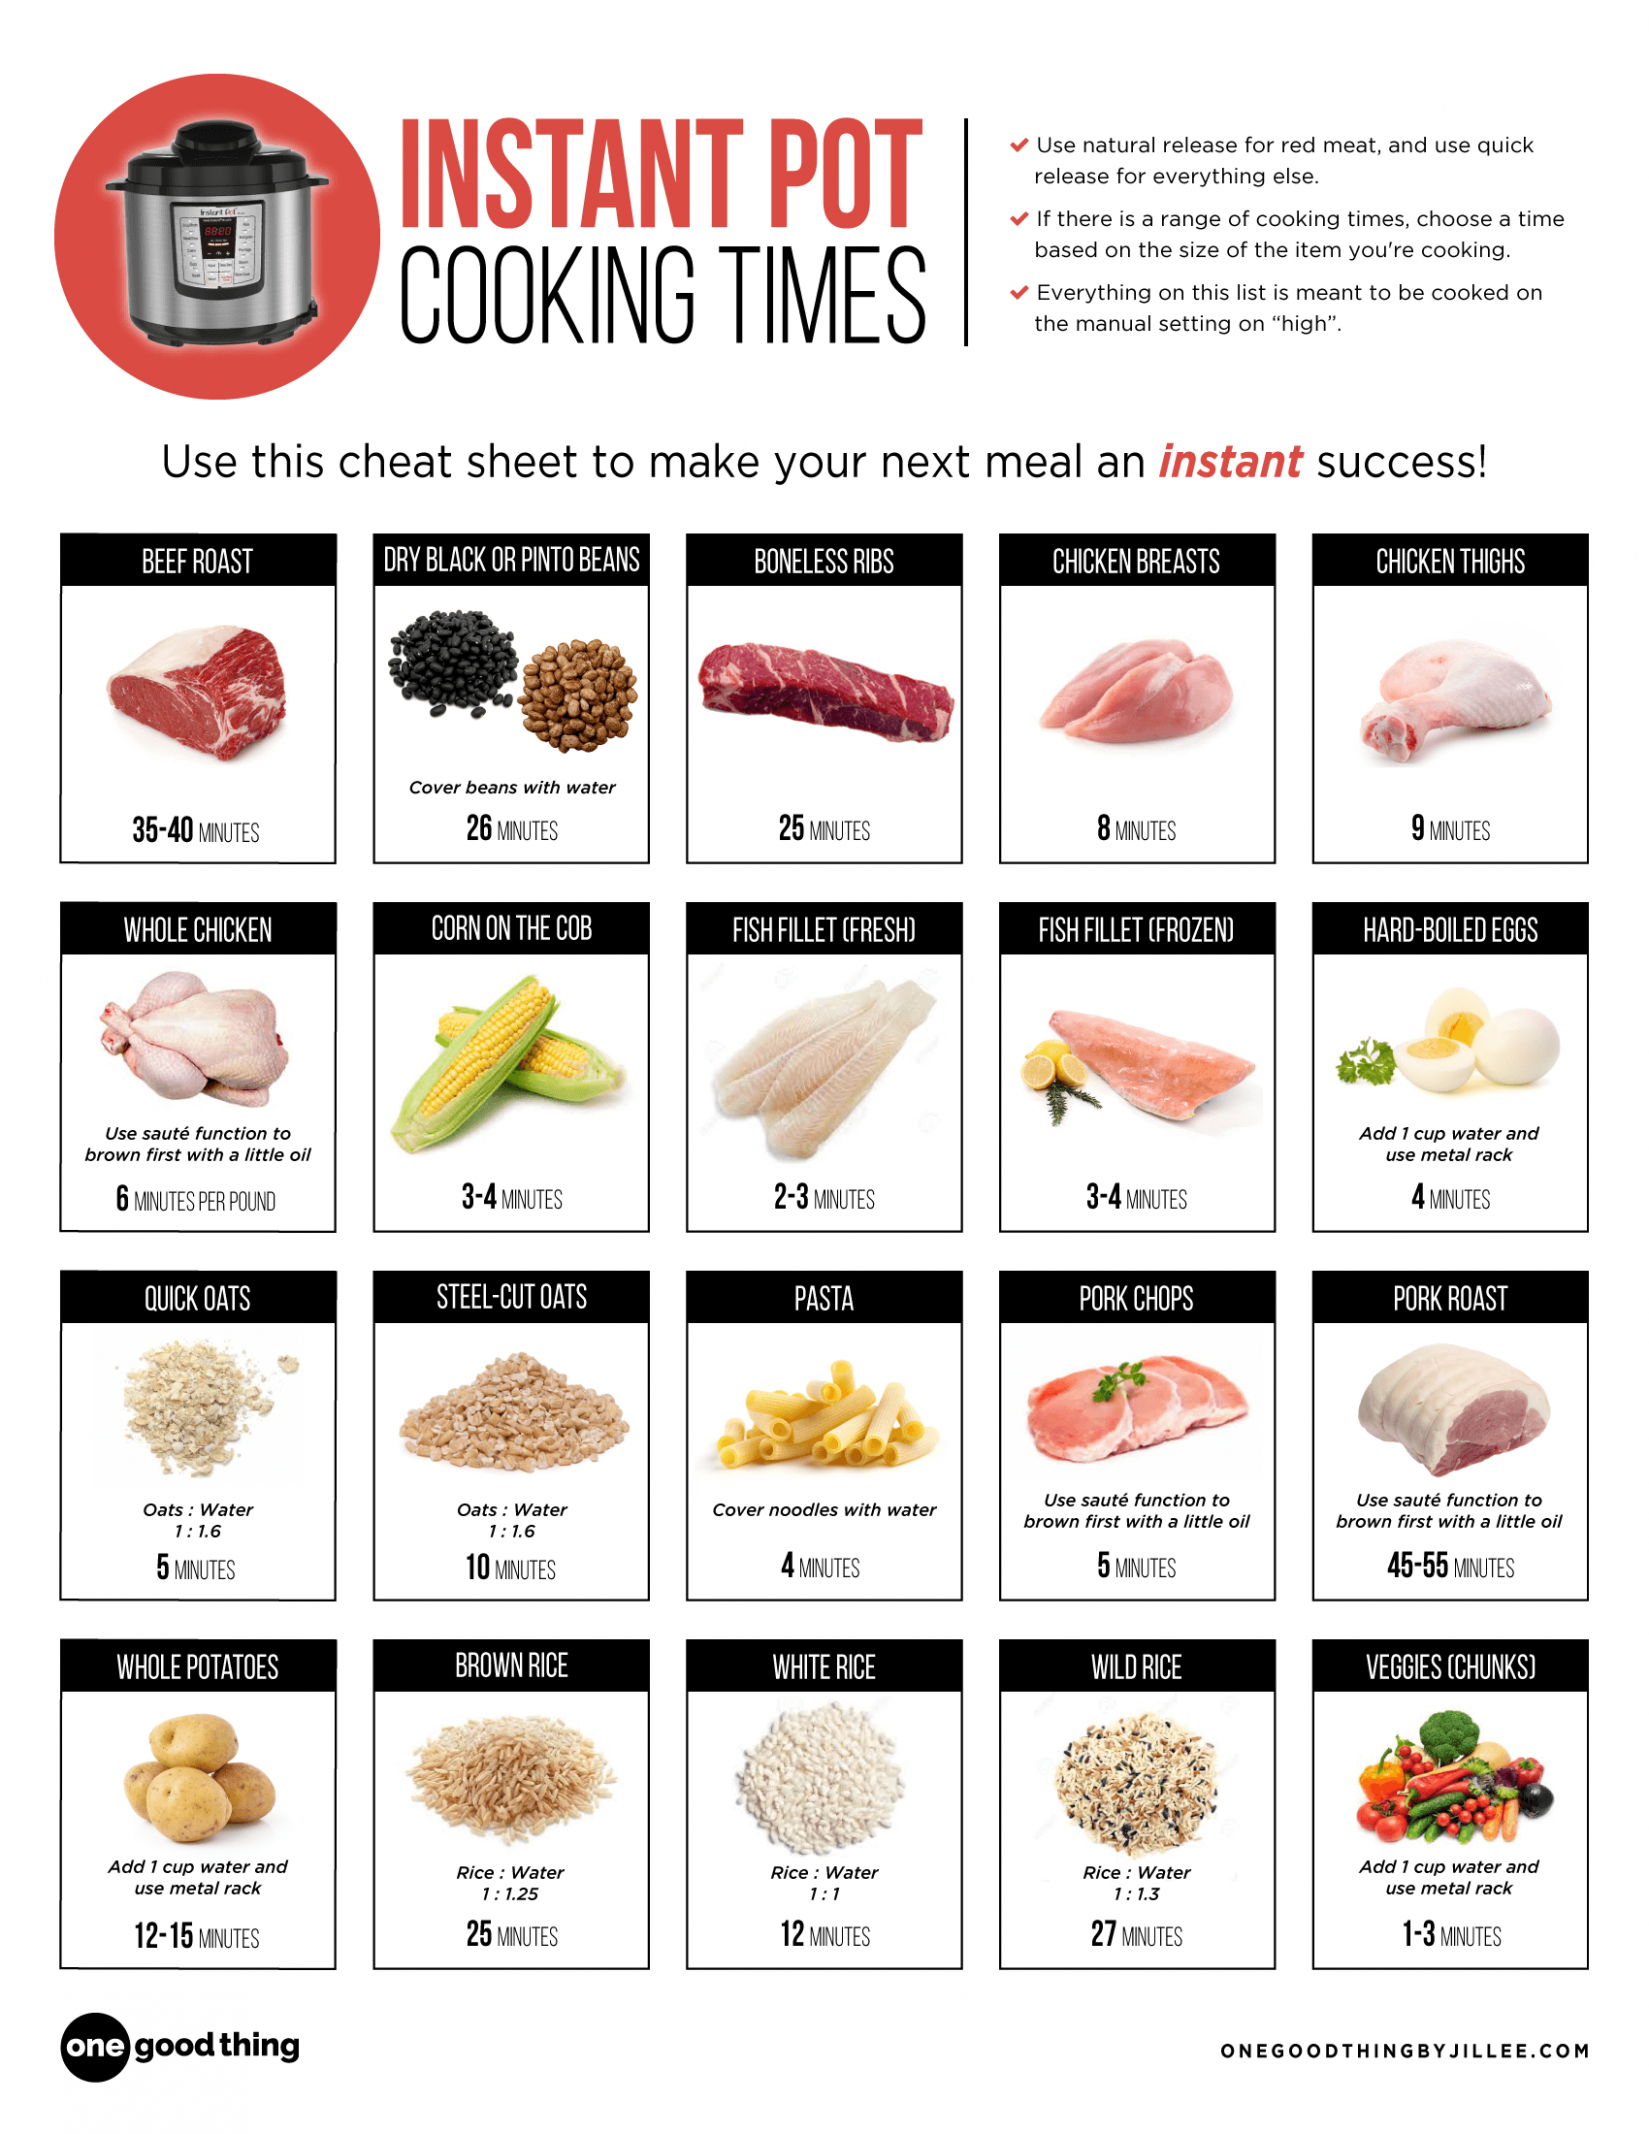 The Most Useful Instant Pot Cheat Sheet On the Web Just Got Better ..